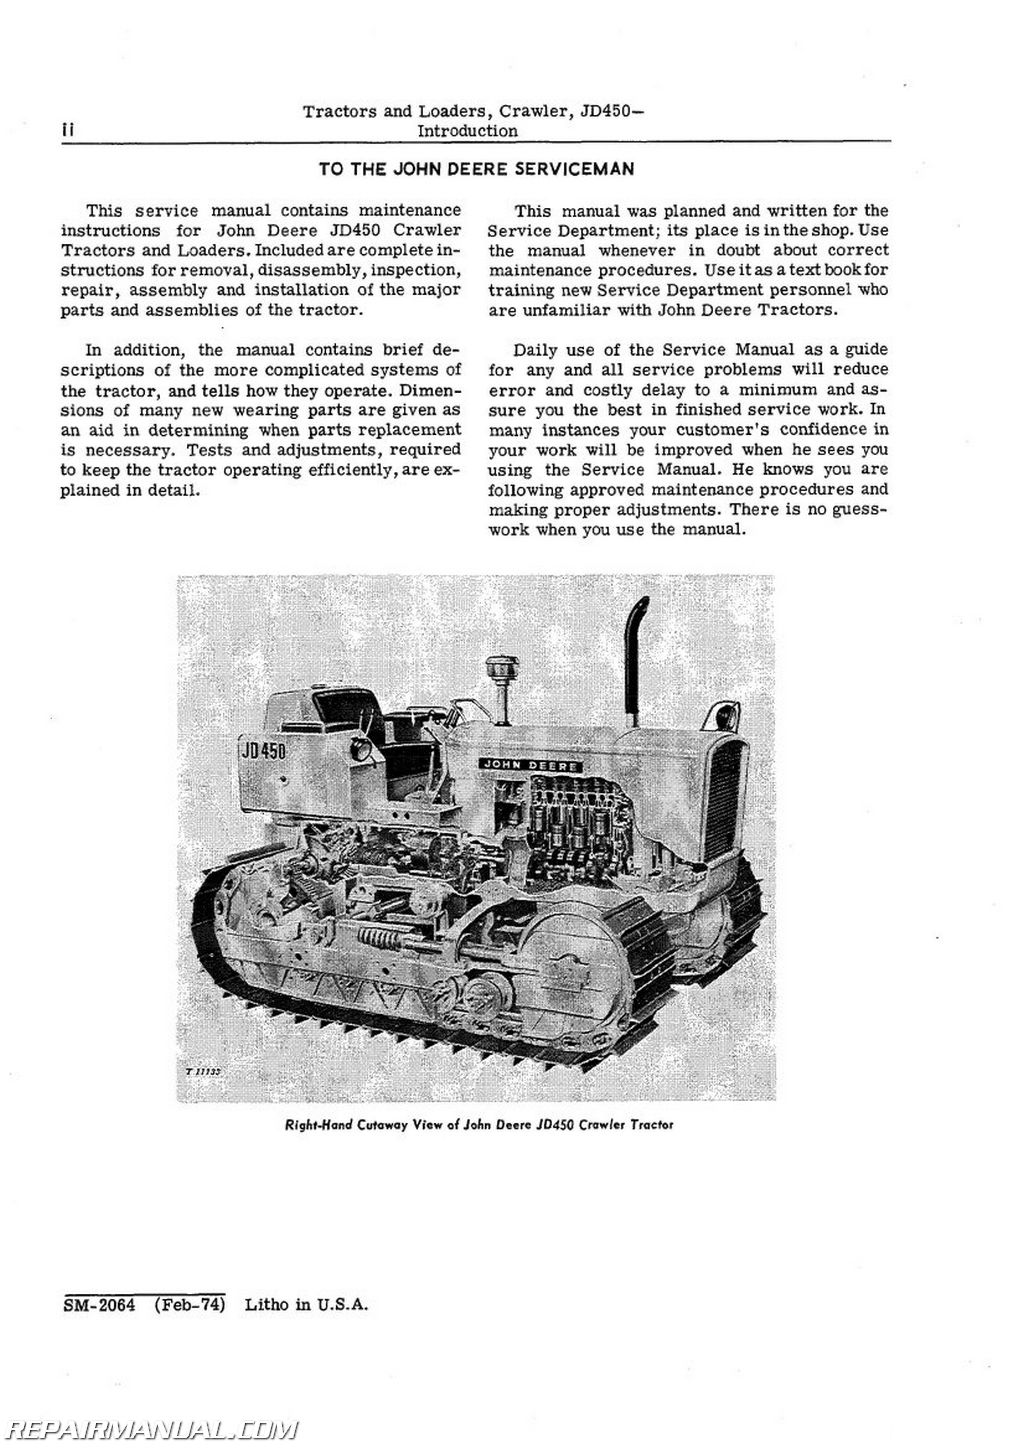 John Deere Crawler dozer manual